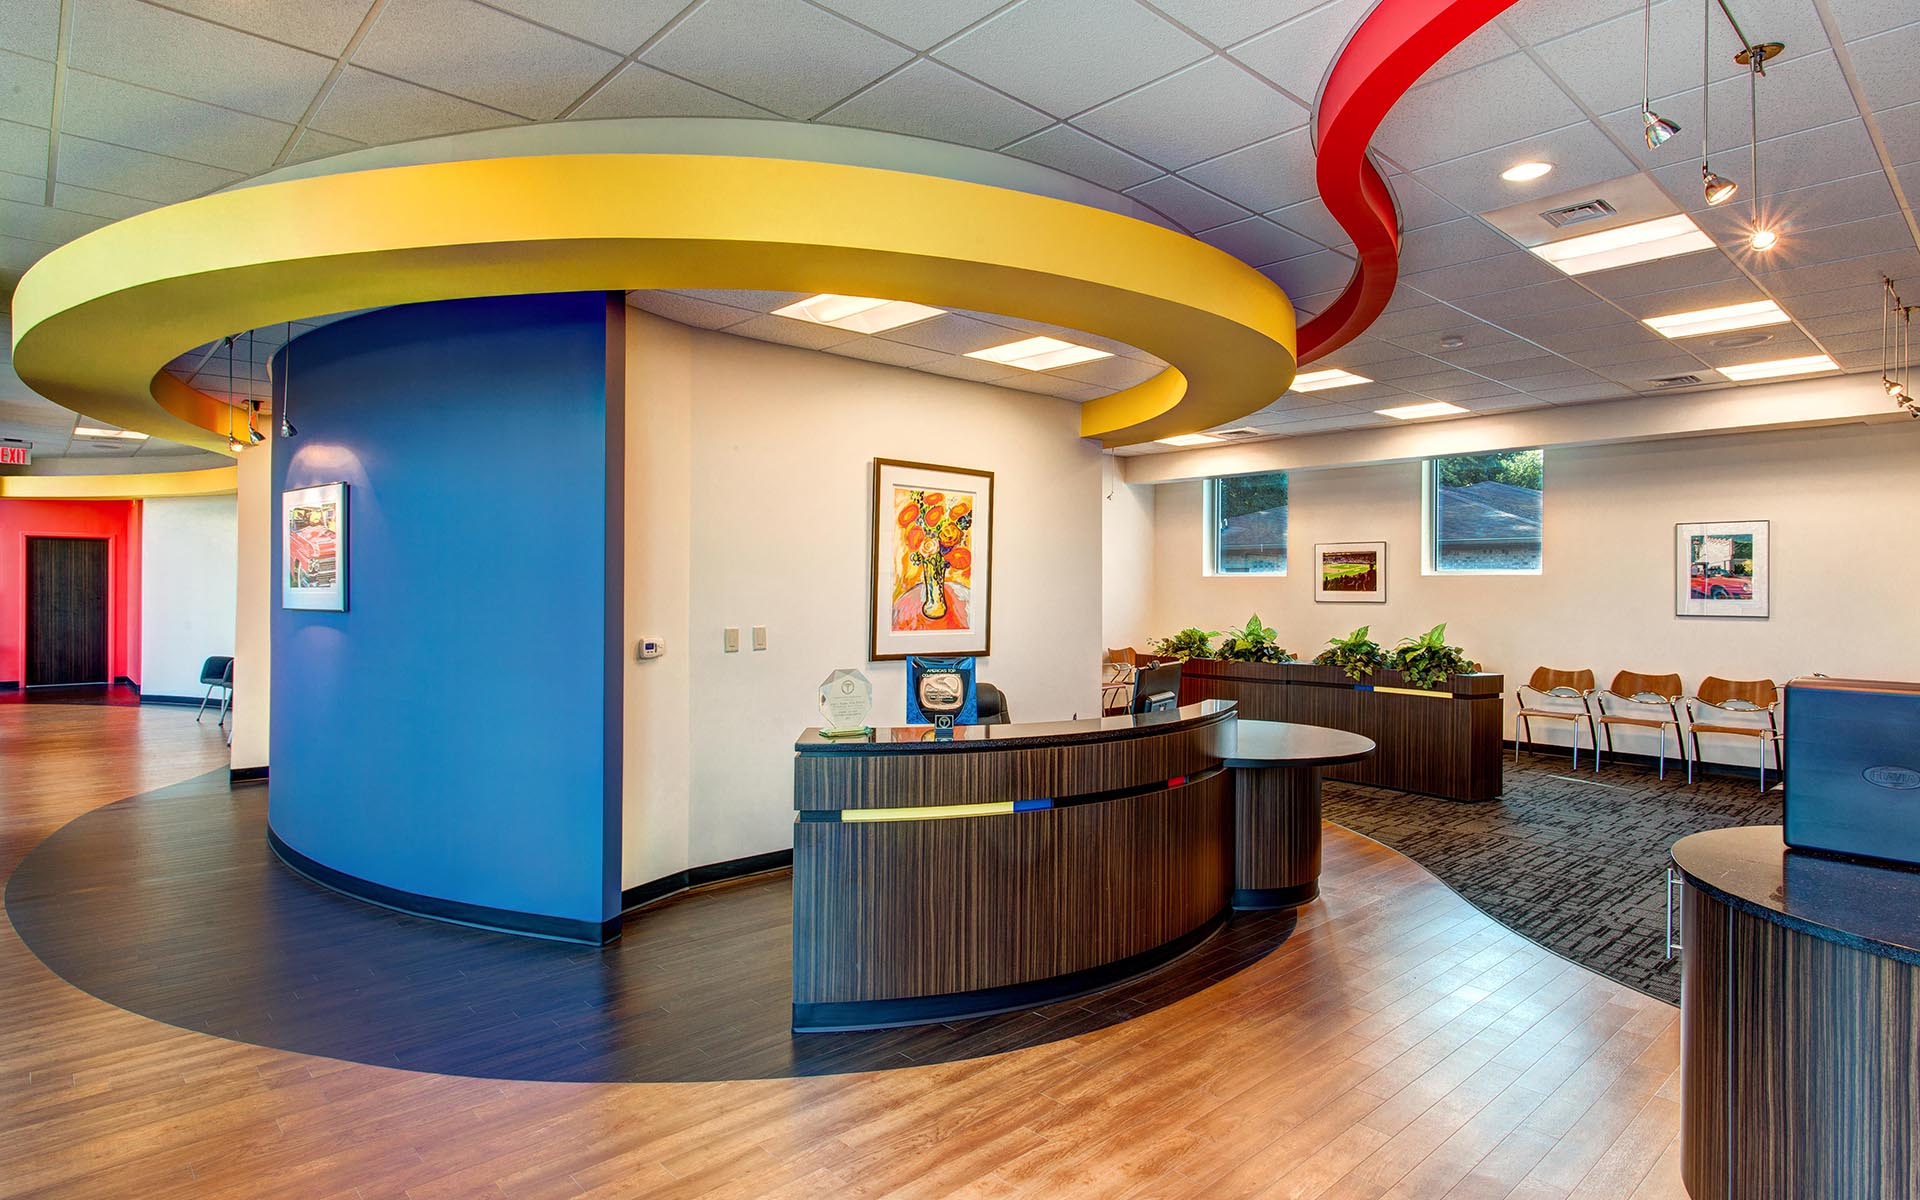 Wagner Macula & Retina Center - Chesapeake